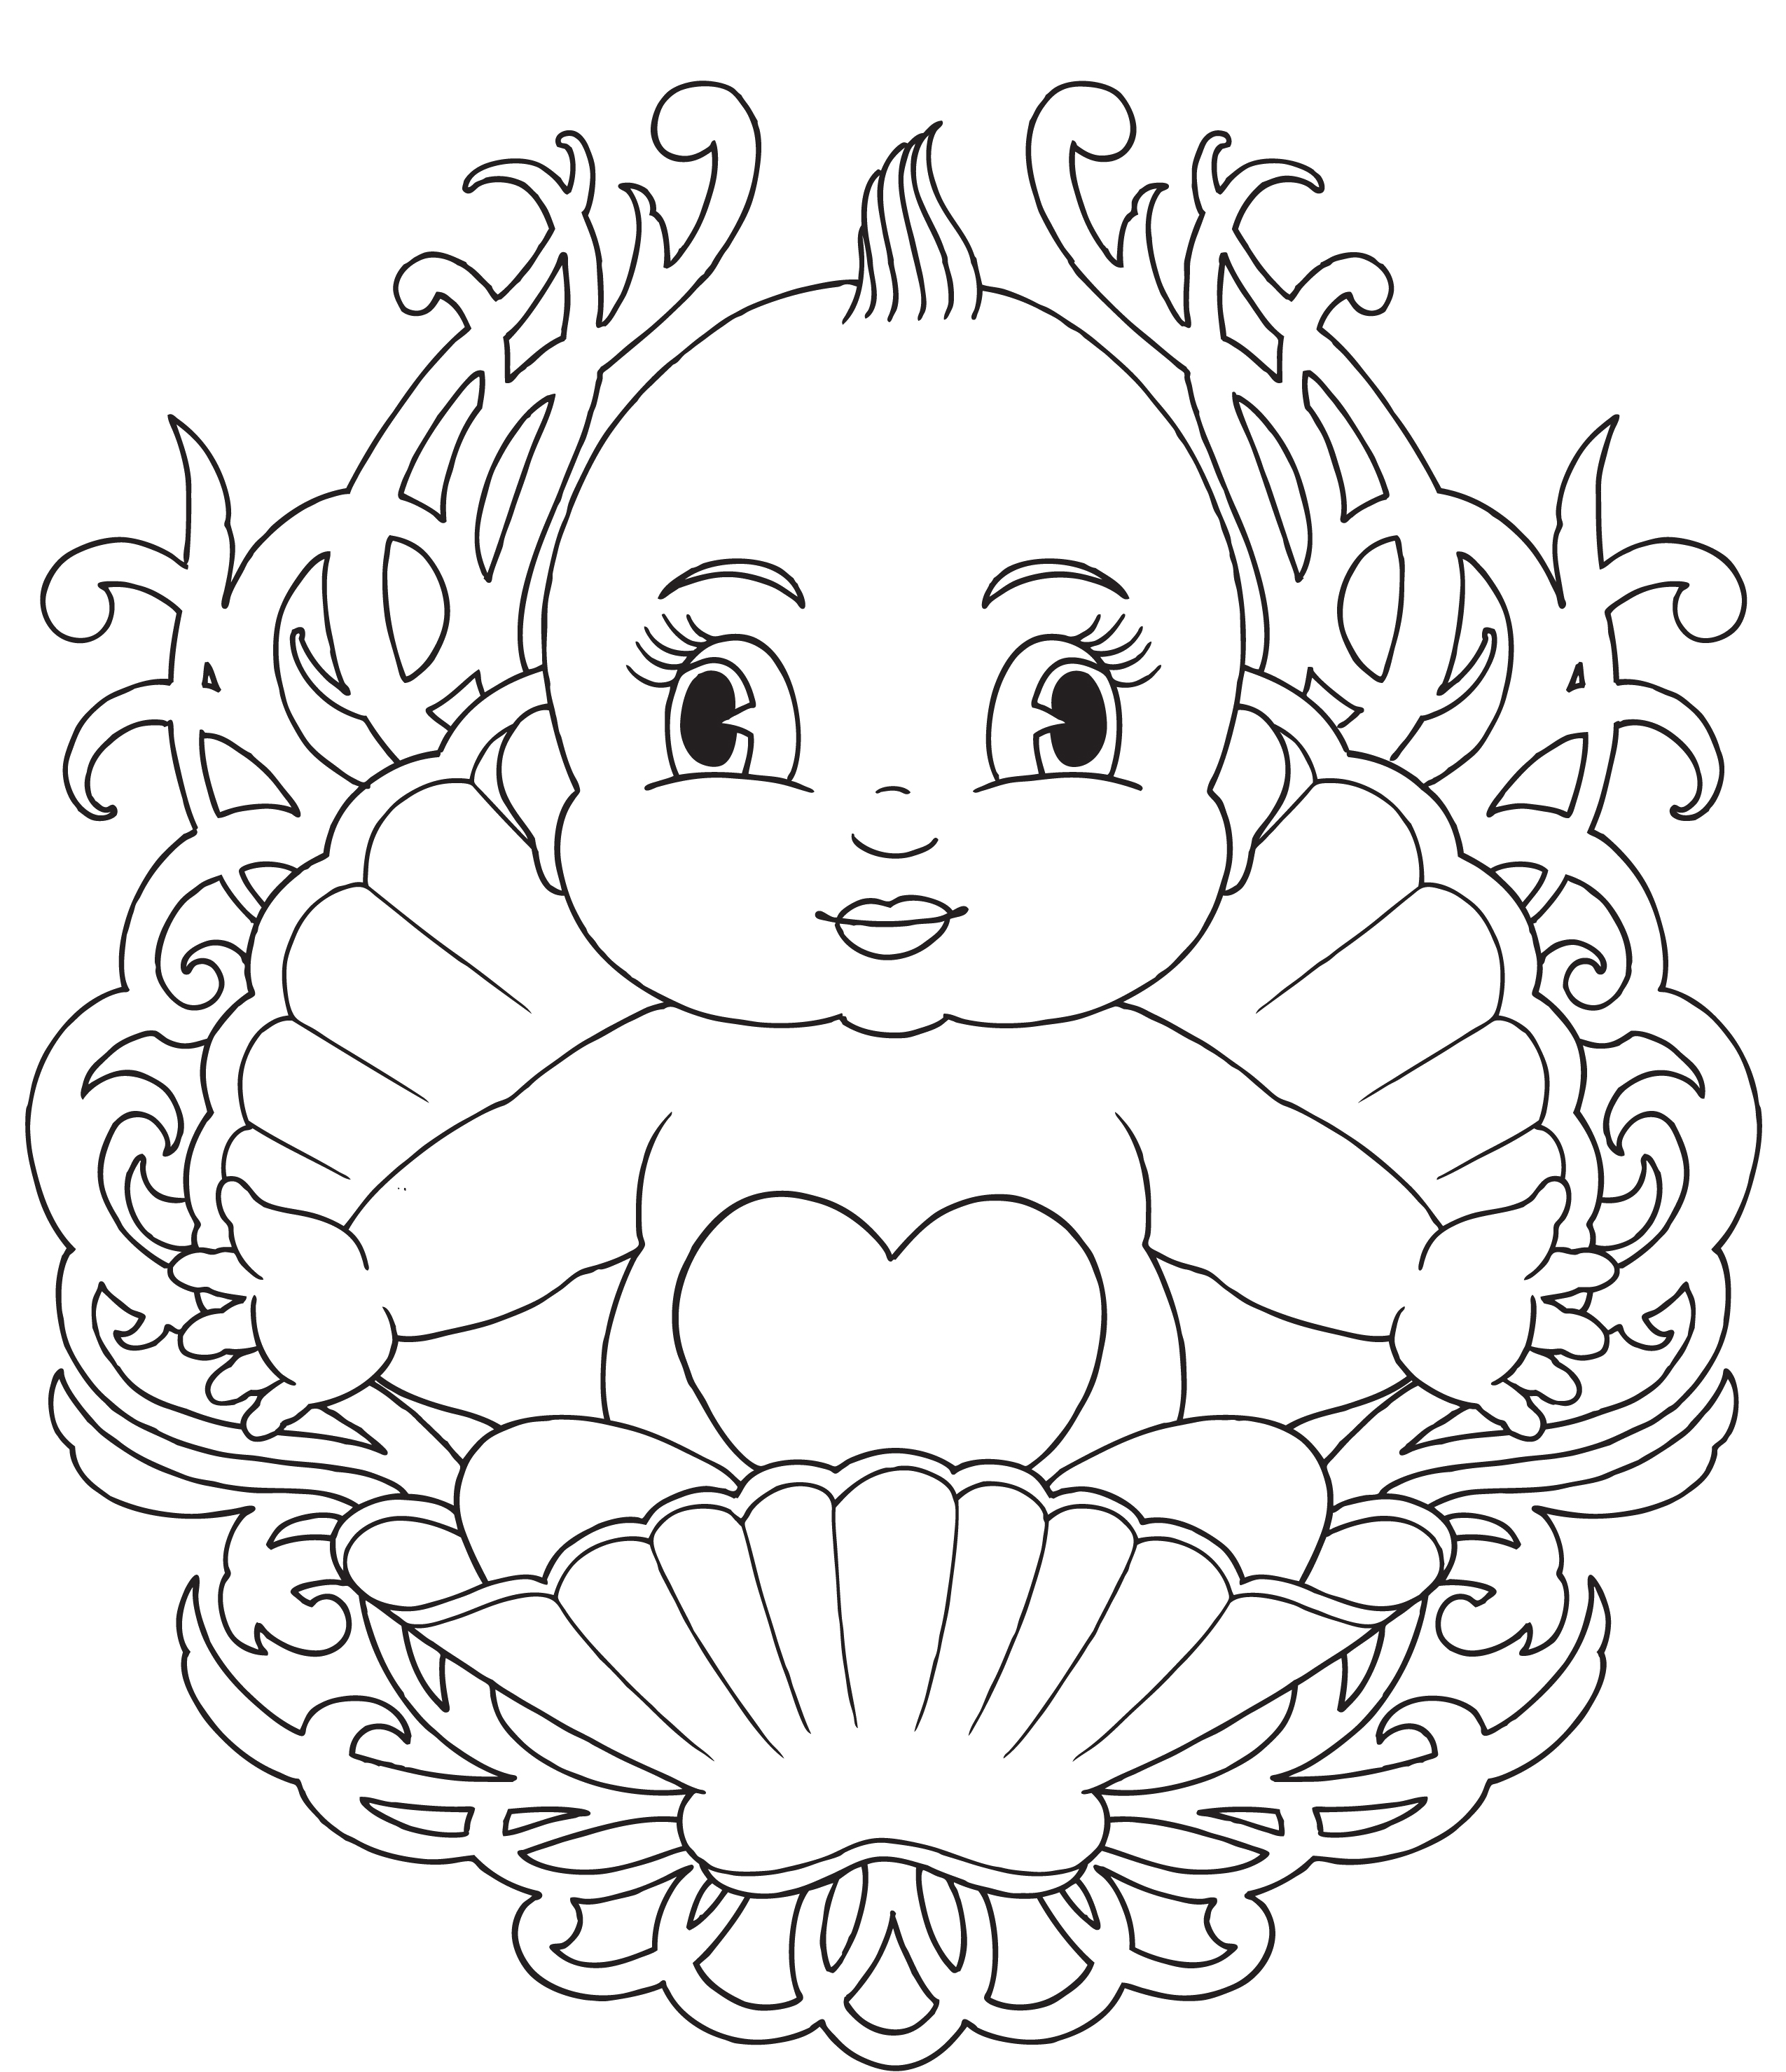 Free Printable Baby Coloring Pages For Kids Newborn Baby Coloring Pages Free